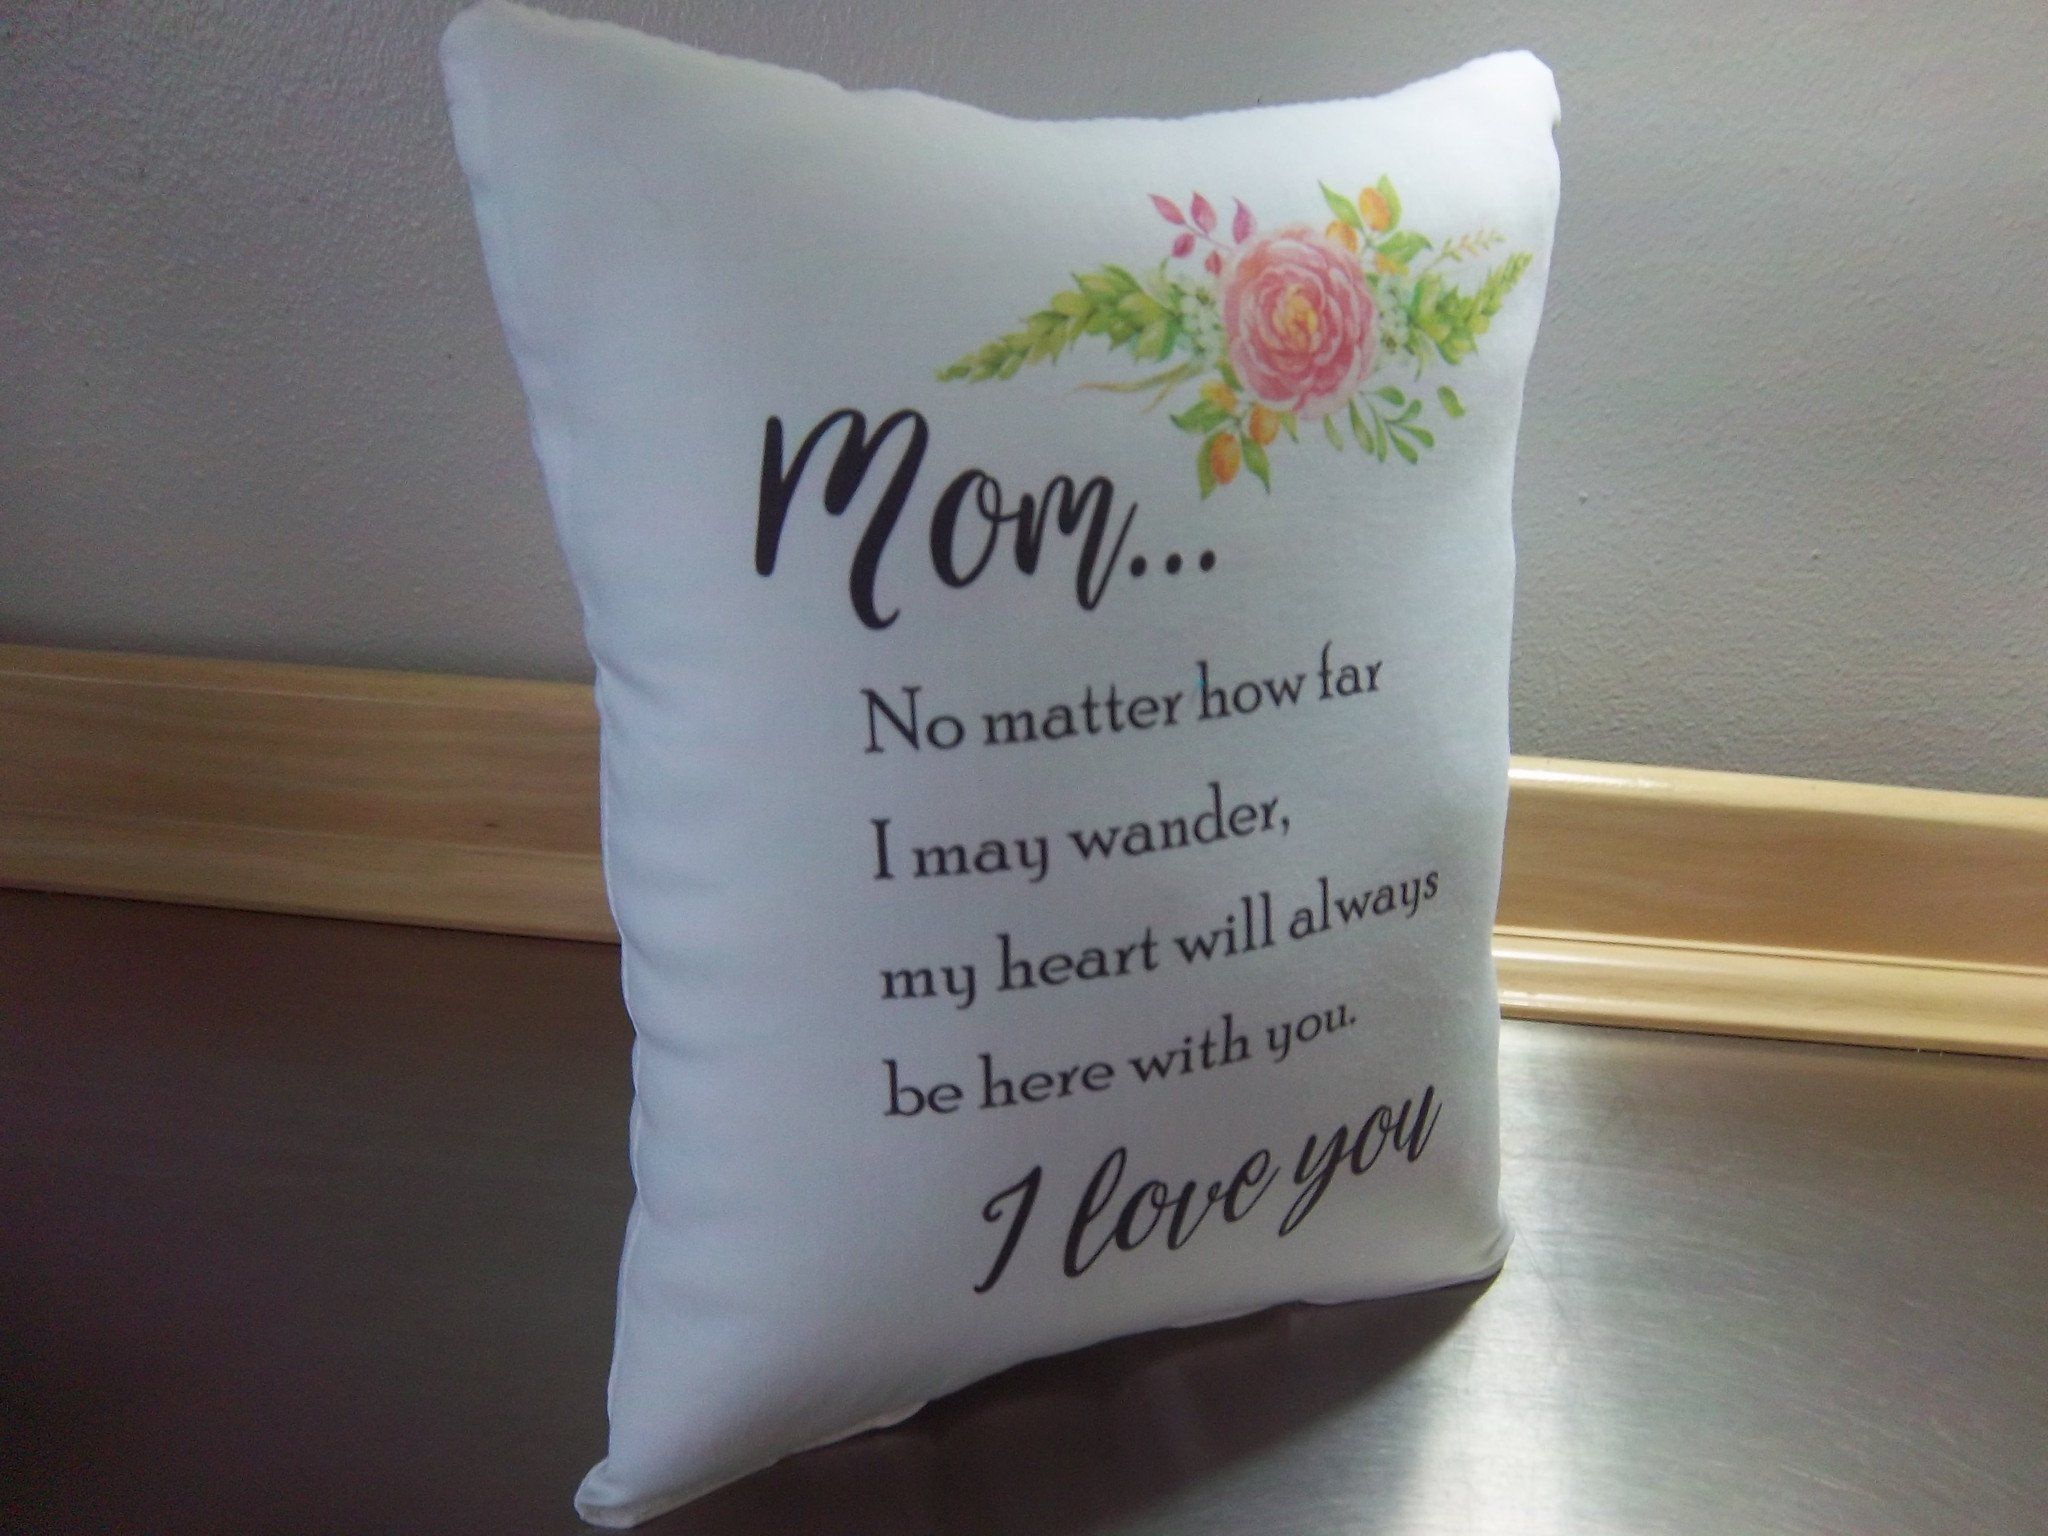 Pillows mom birthday gift throw pillow mother long distance gift pillows easter gift for mom white poplin throw pillow mother birthday gift home decor negle Images